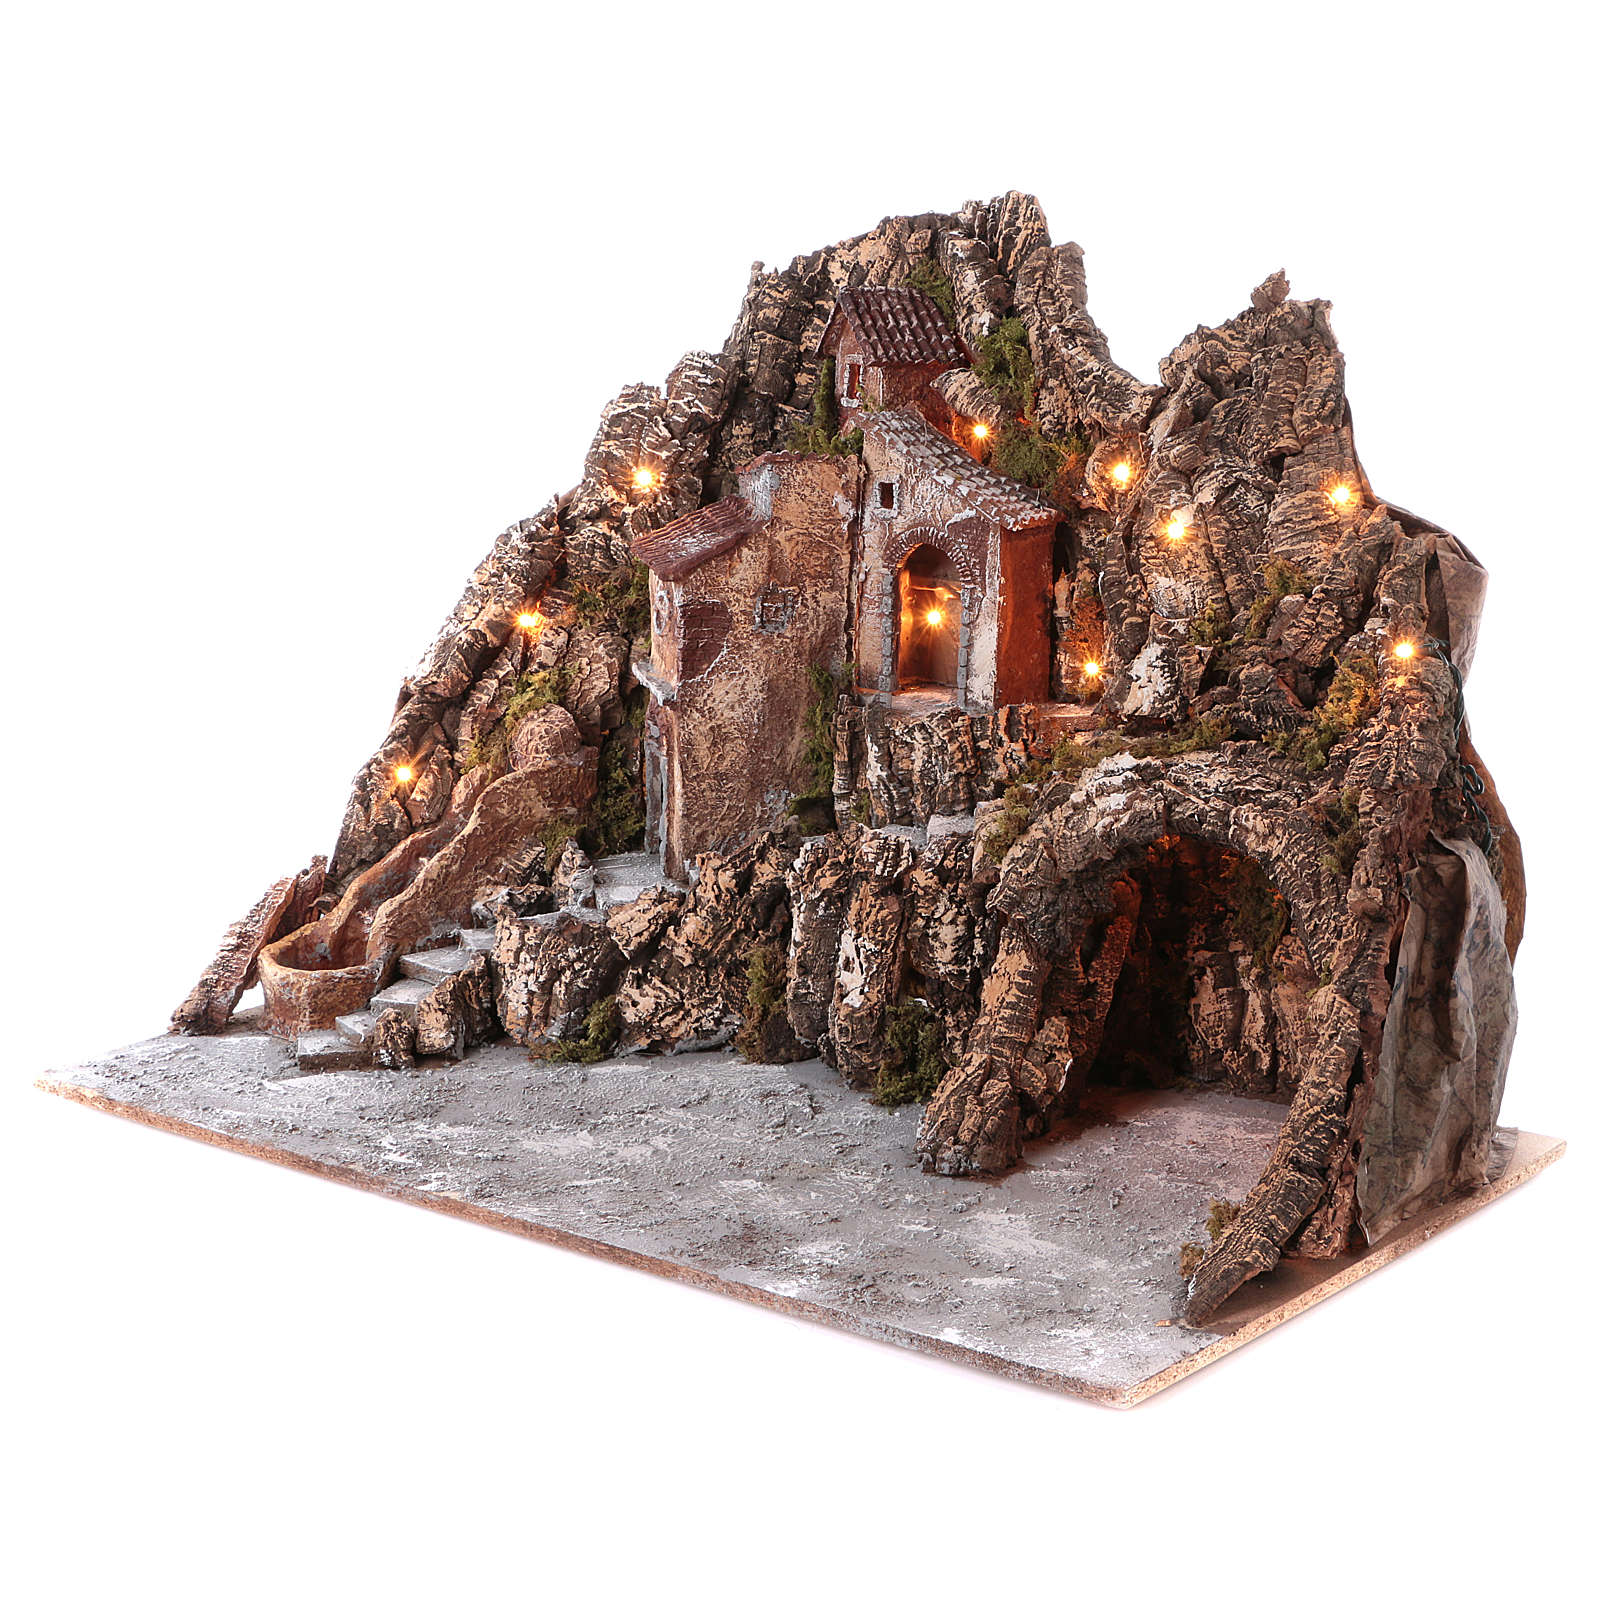 Village for nativity scene with lights, water stream movement and cave 55x85x65 cm, Neapolitan style 4